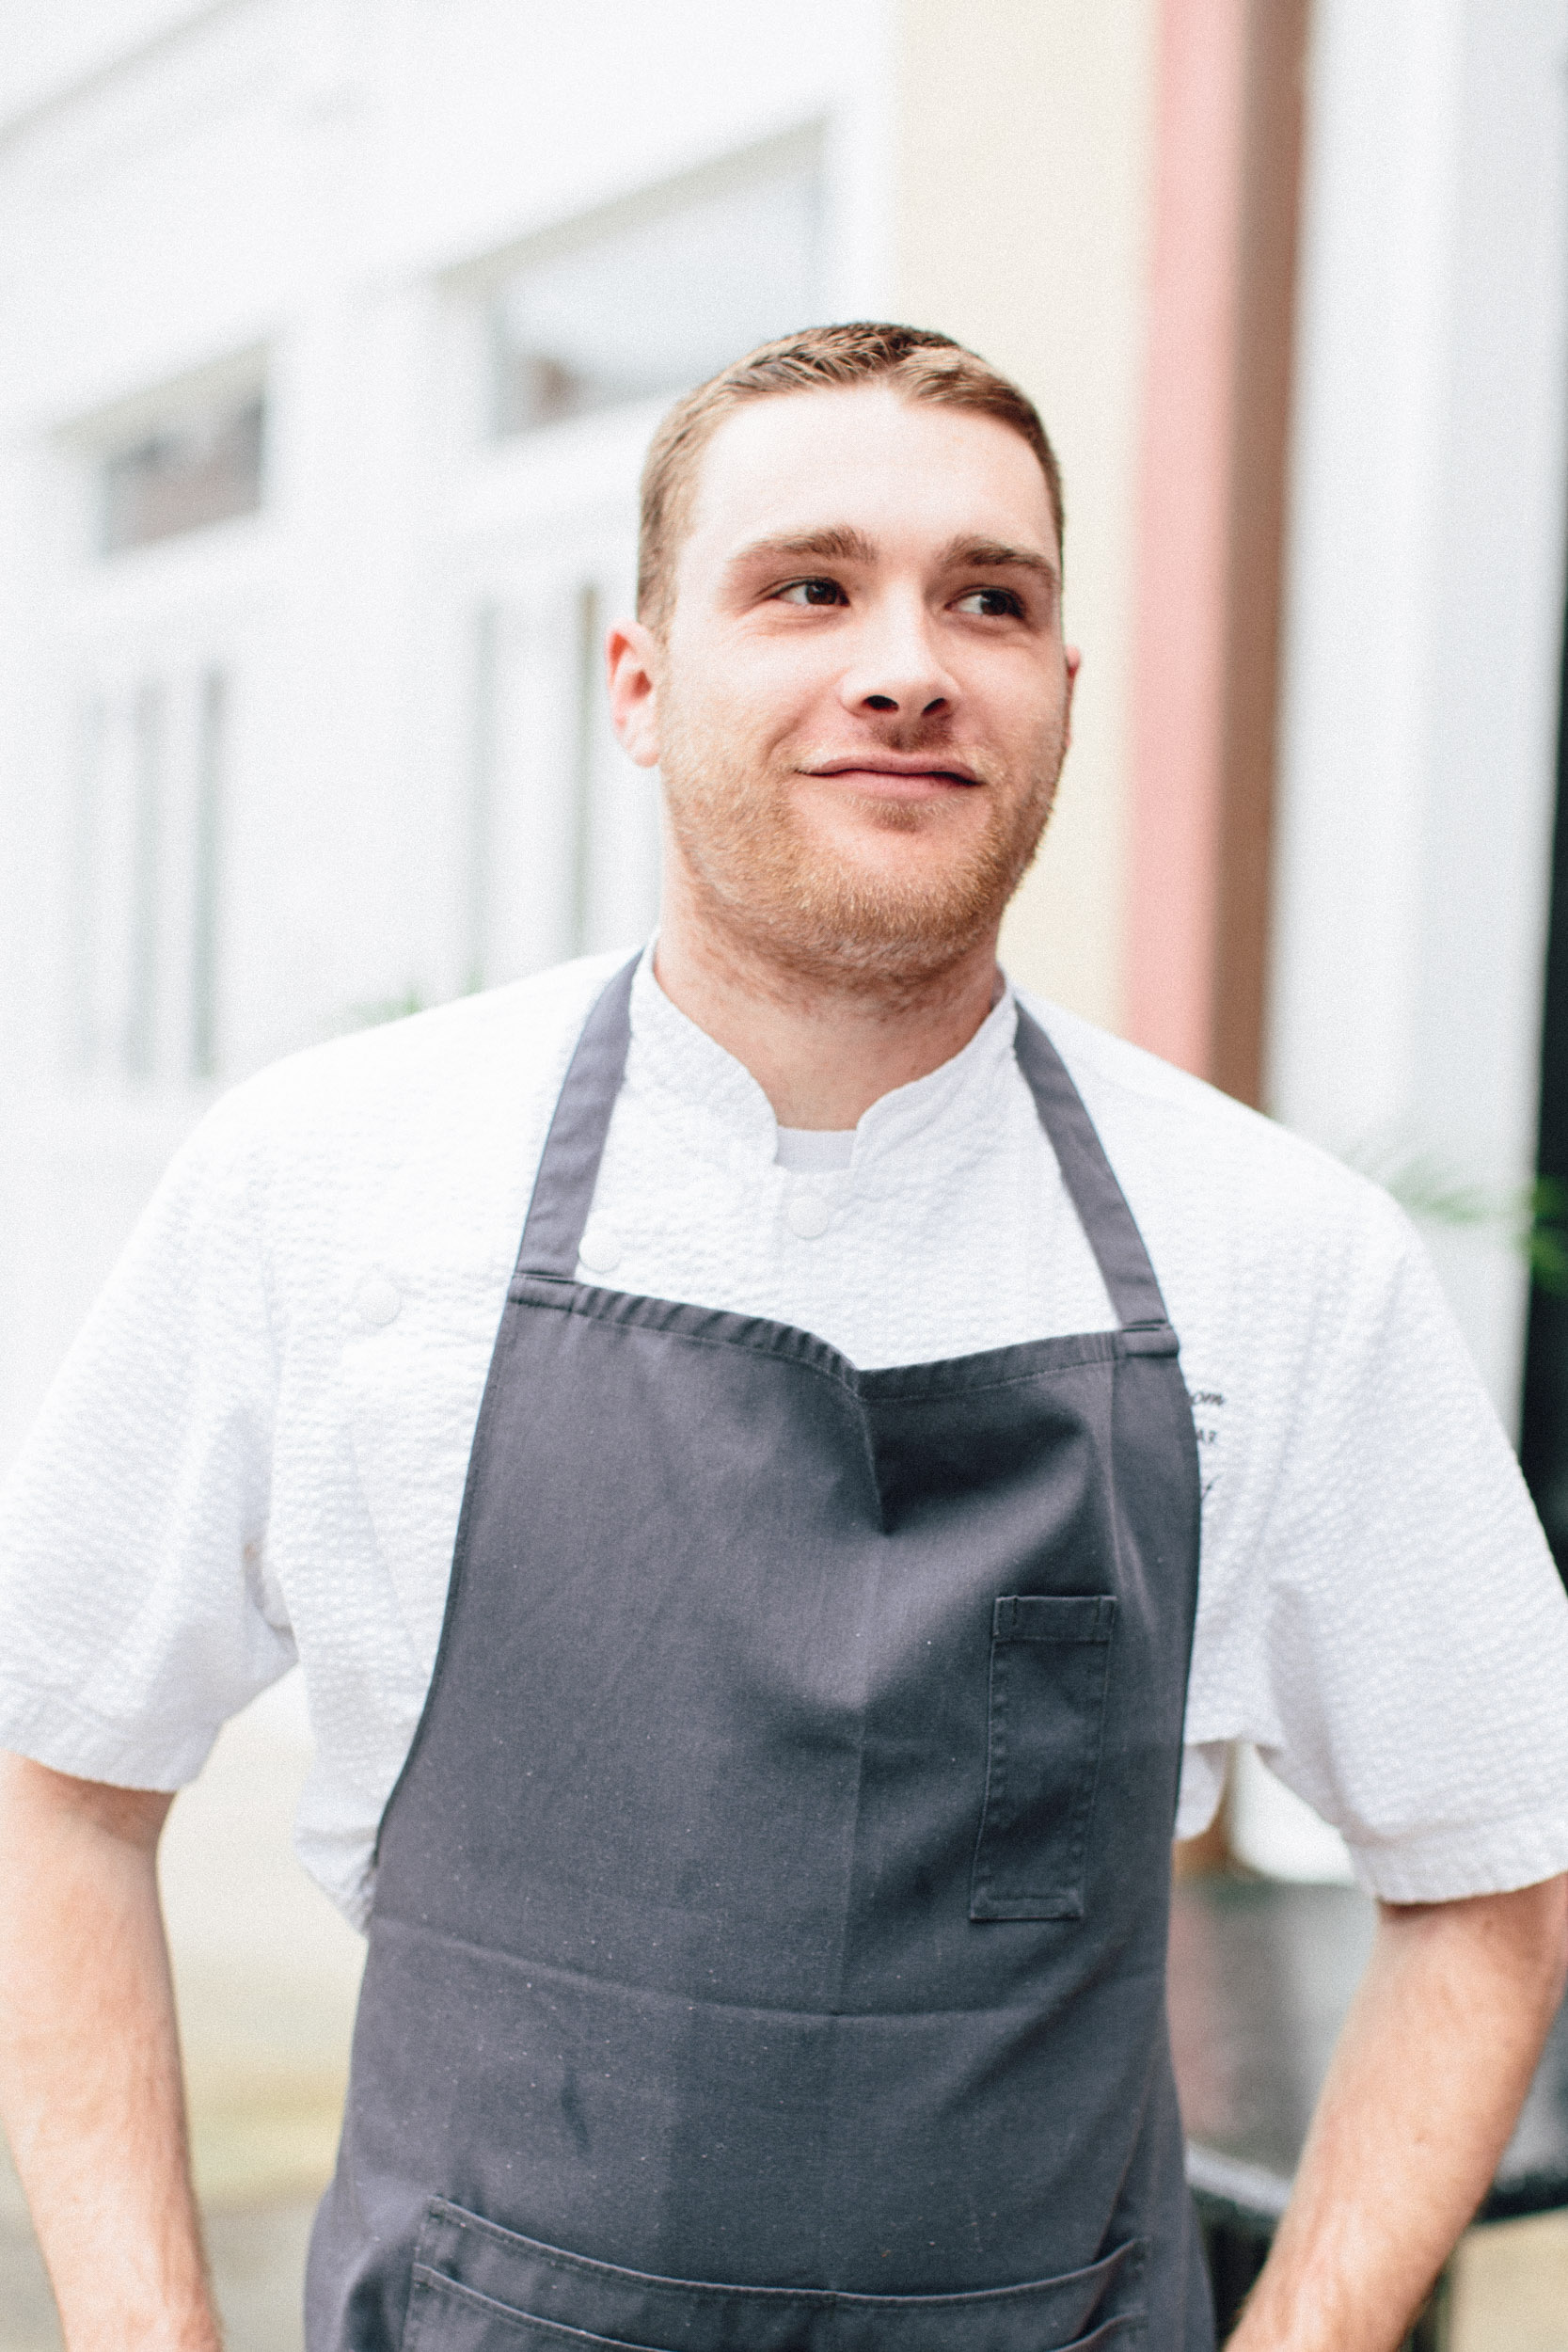 Executive Chef Cropf and Pasty Chef Tighe (below), have since taken their talent to Trummer's on Main in Clifton Virginia. Haven't heard of Clifton, but if I ever go, I'd defenitely see what these two are up to in the kitchen there!